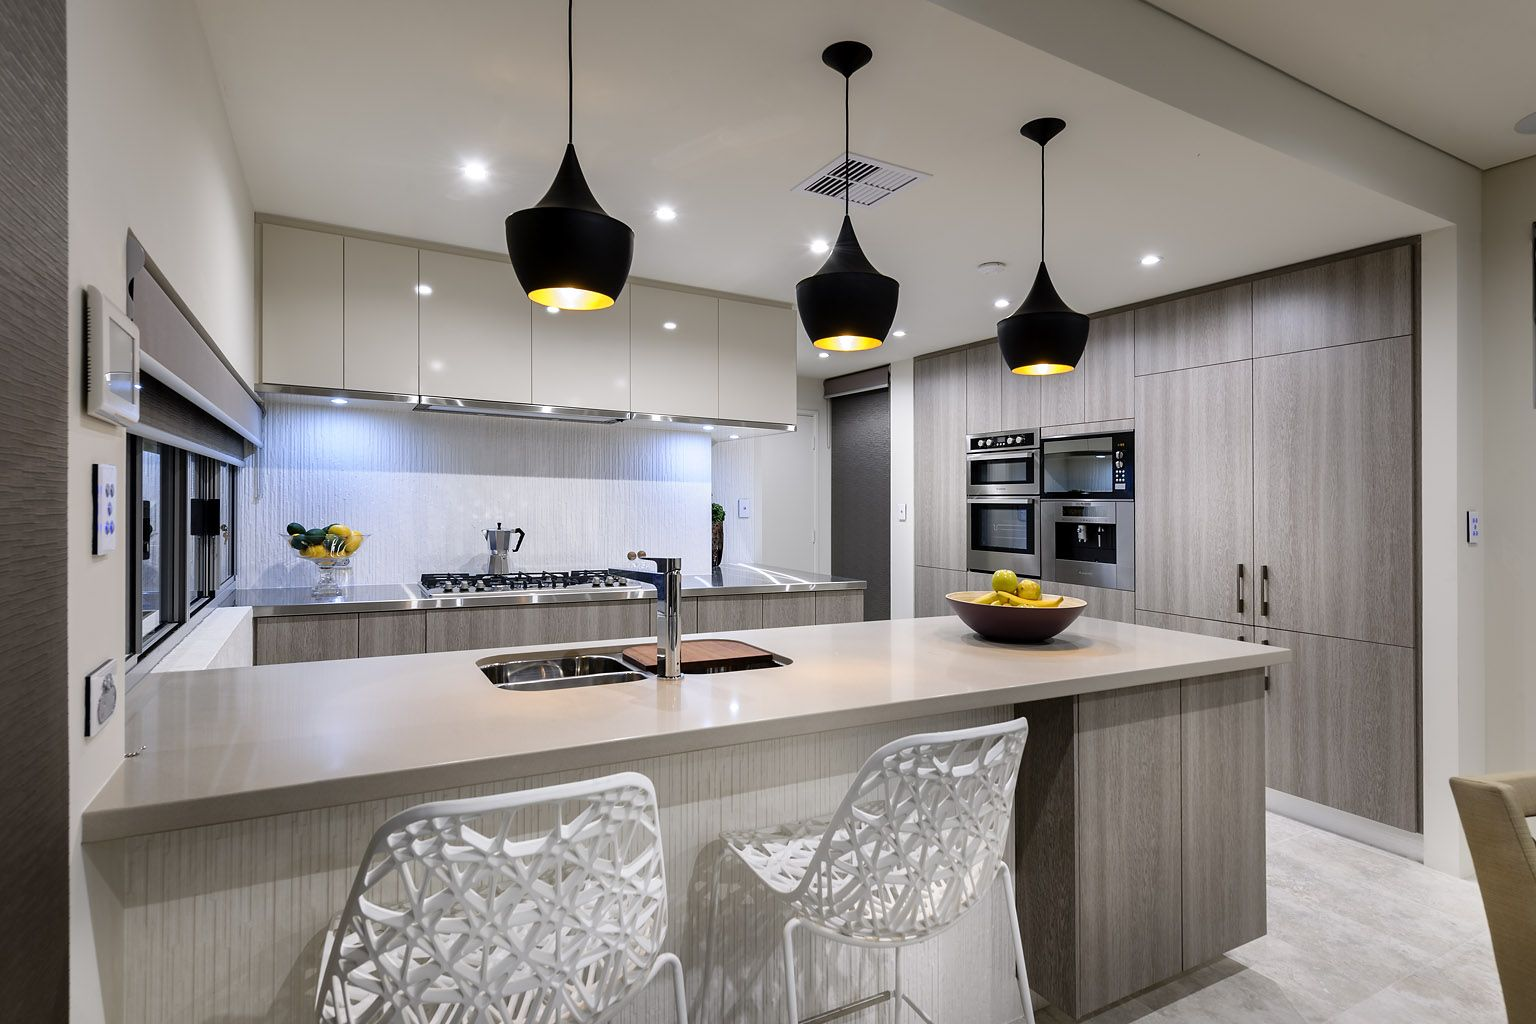 pinterest kitchen remodel ideas designs for small kitchens porcelanosa 39jersey white 39 tile switch homes display